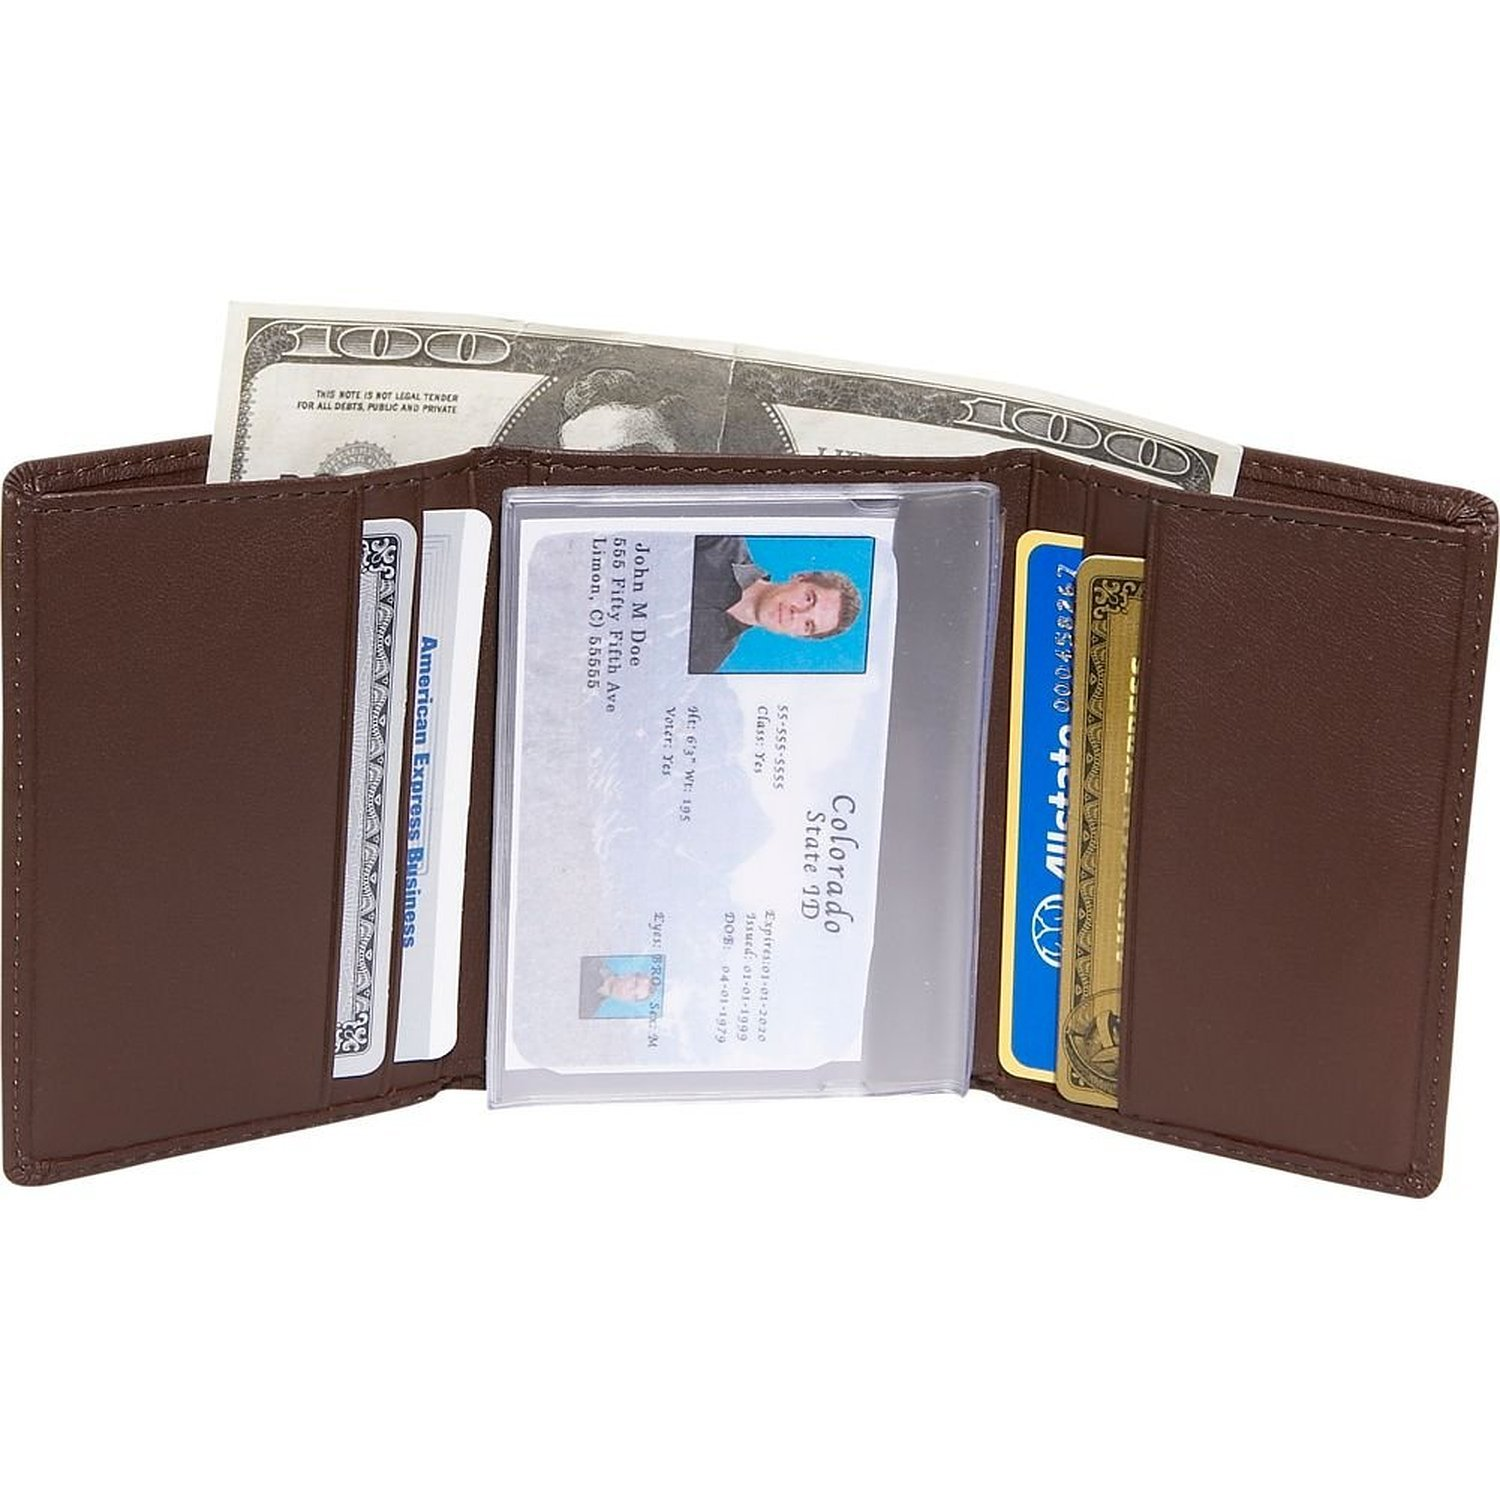 Black EMPORIUM LEATHER DBA Royce Leather Royce Leather Mens Credit Card Trifold Wallet in Leather 103-BLACK-5